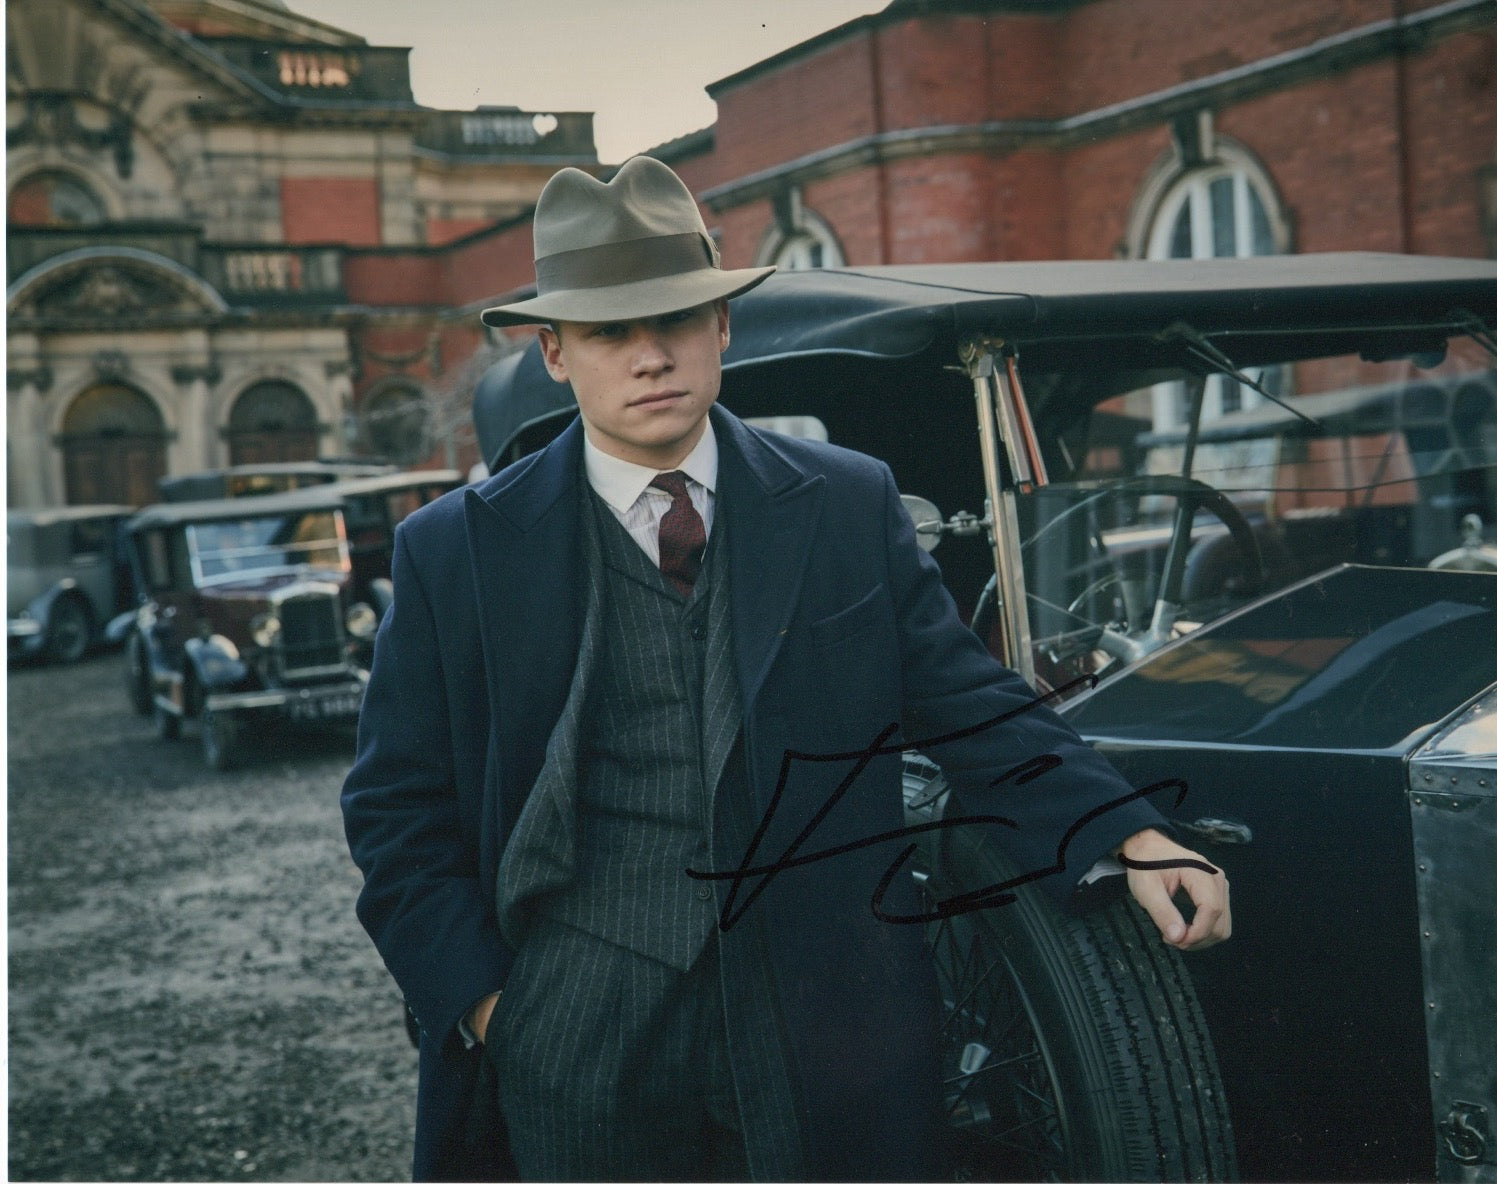 Finn Cole Peaky Blinders Autograph 8x10 Photo Signed #3 - Outlaw Hobbies Authentic Autographs